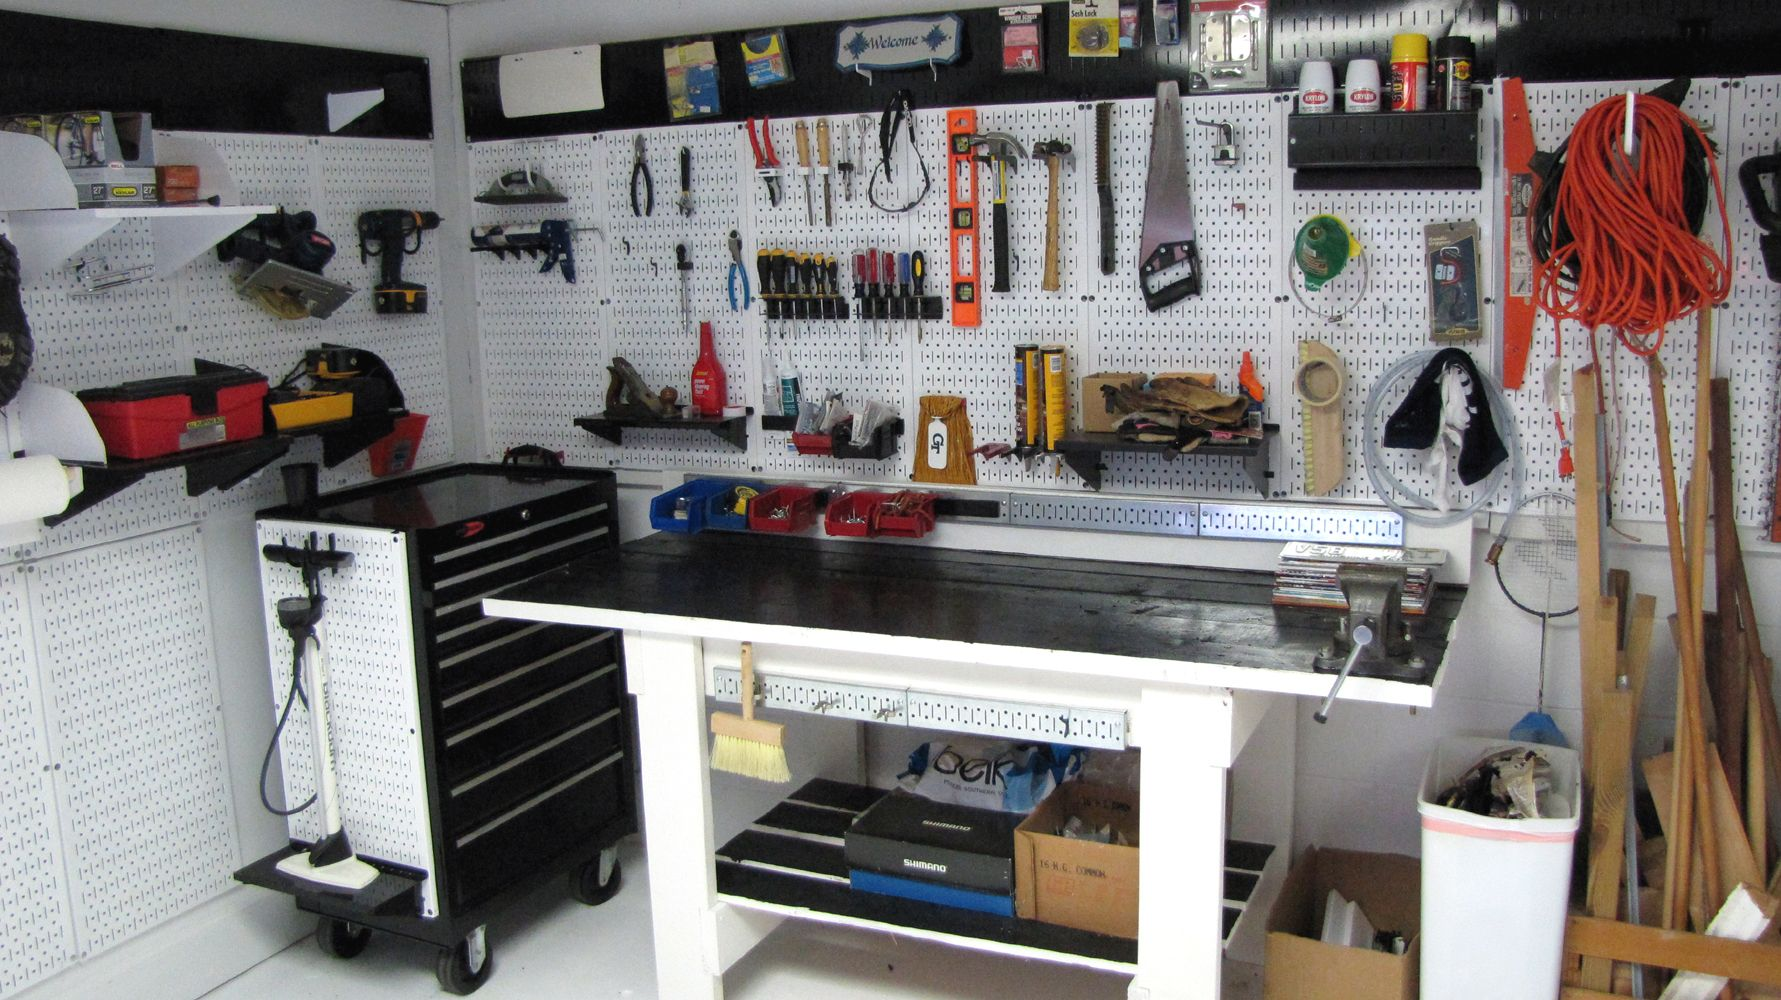 A wall control metal pegboard work area great for bike and diy wall control garage pegboard tool organizers a gallery of garage storage and organization pegboard ideas publicscrutiny Images